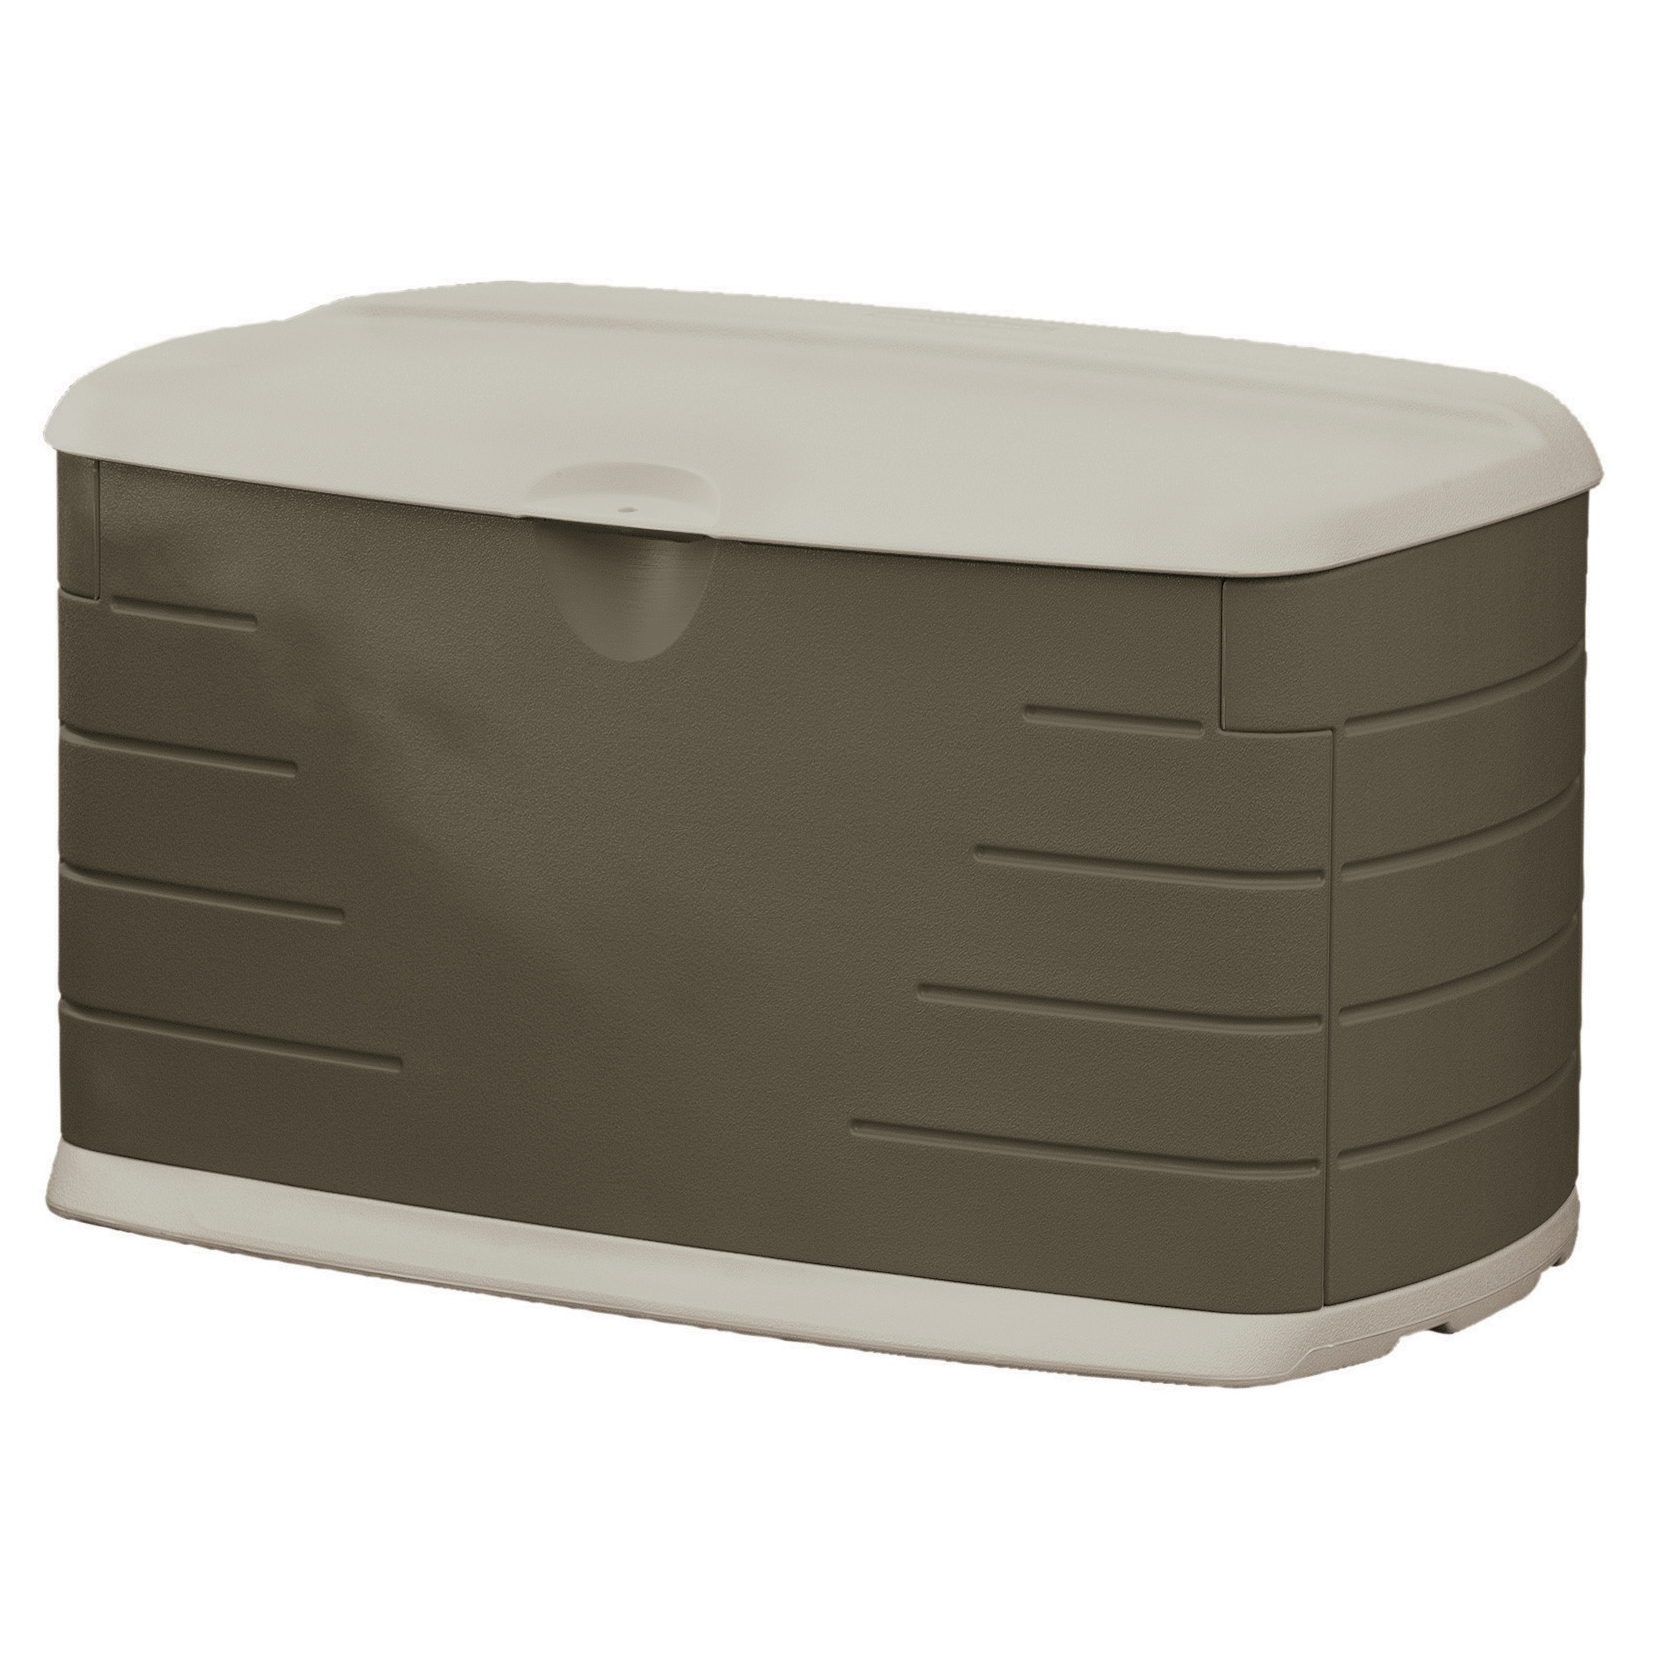 "Rubbermaid FG5F2100OLVSS 75 Gallon 11.875"" L X 44.25"" W X 28.125"" H Outdoor Storage B"